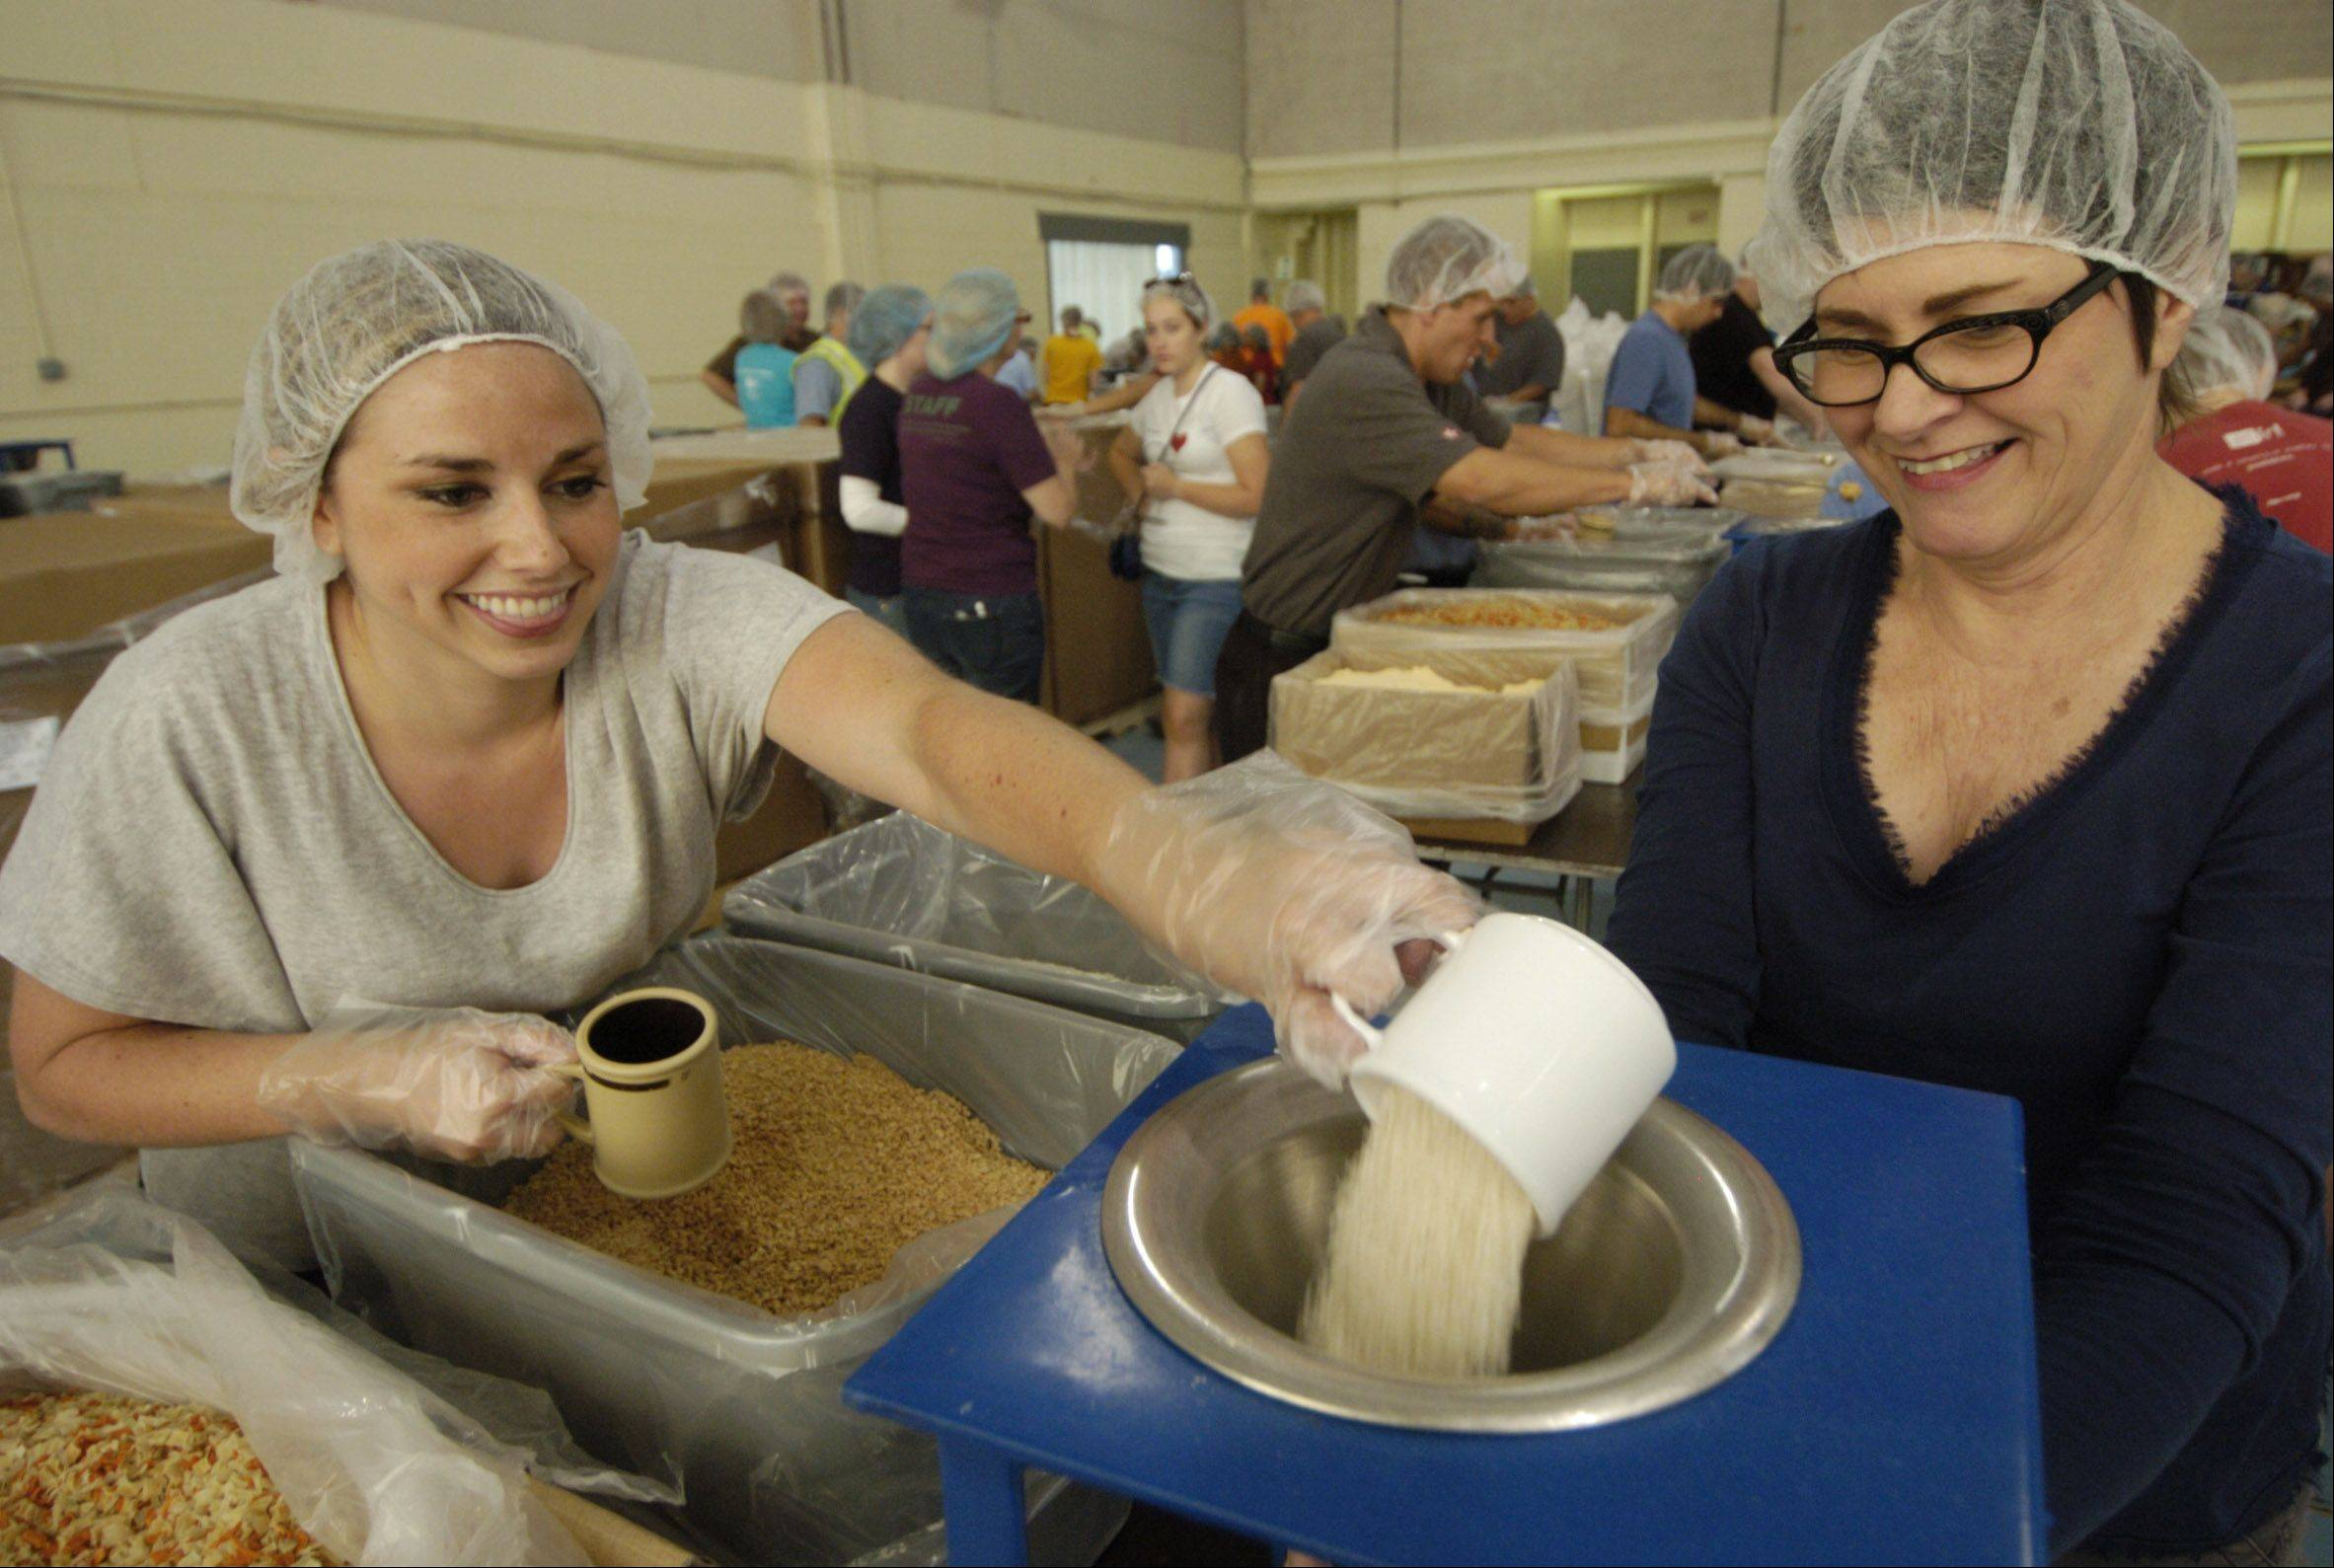 Kristin Horsey, left, of Astraeus Advisers in Park Ridge and Kathleen Joleaud of Magnetar Capital in Evanston help assemble meals Friday at Priester Aviation in Wheeling